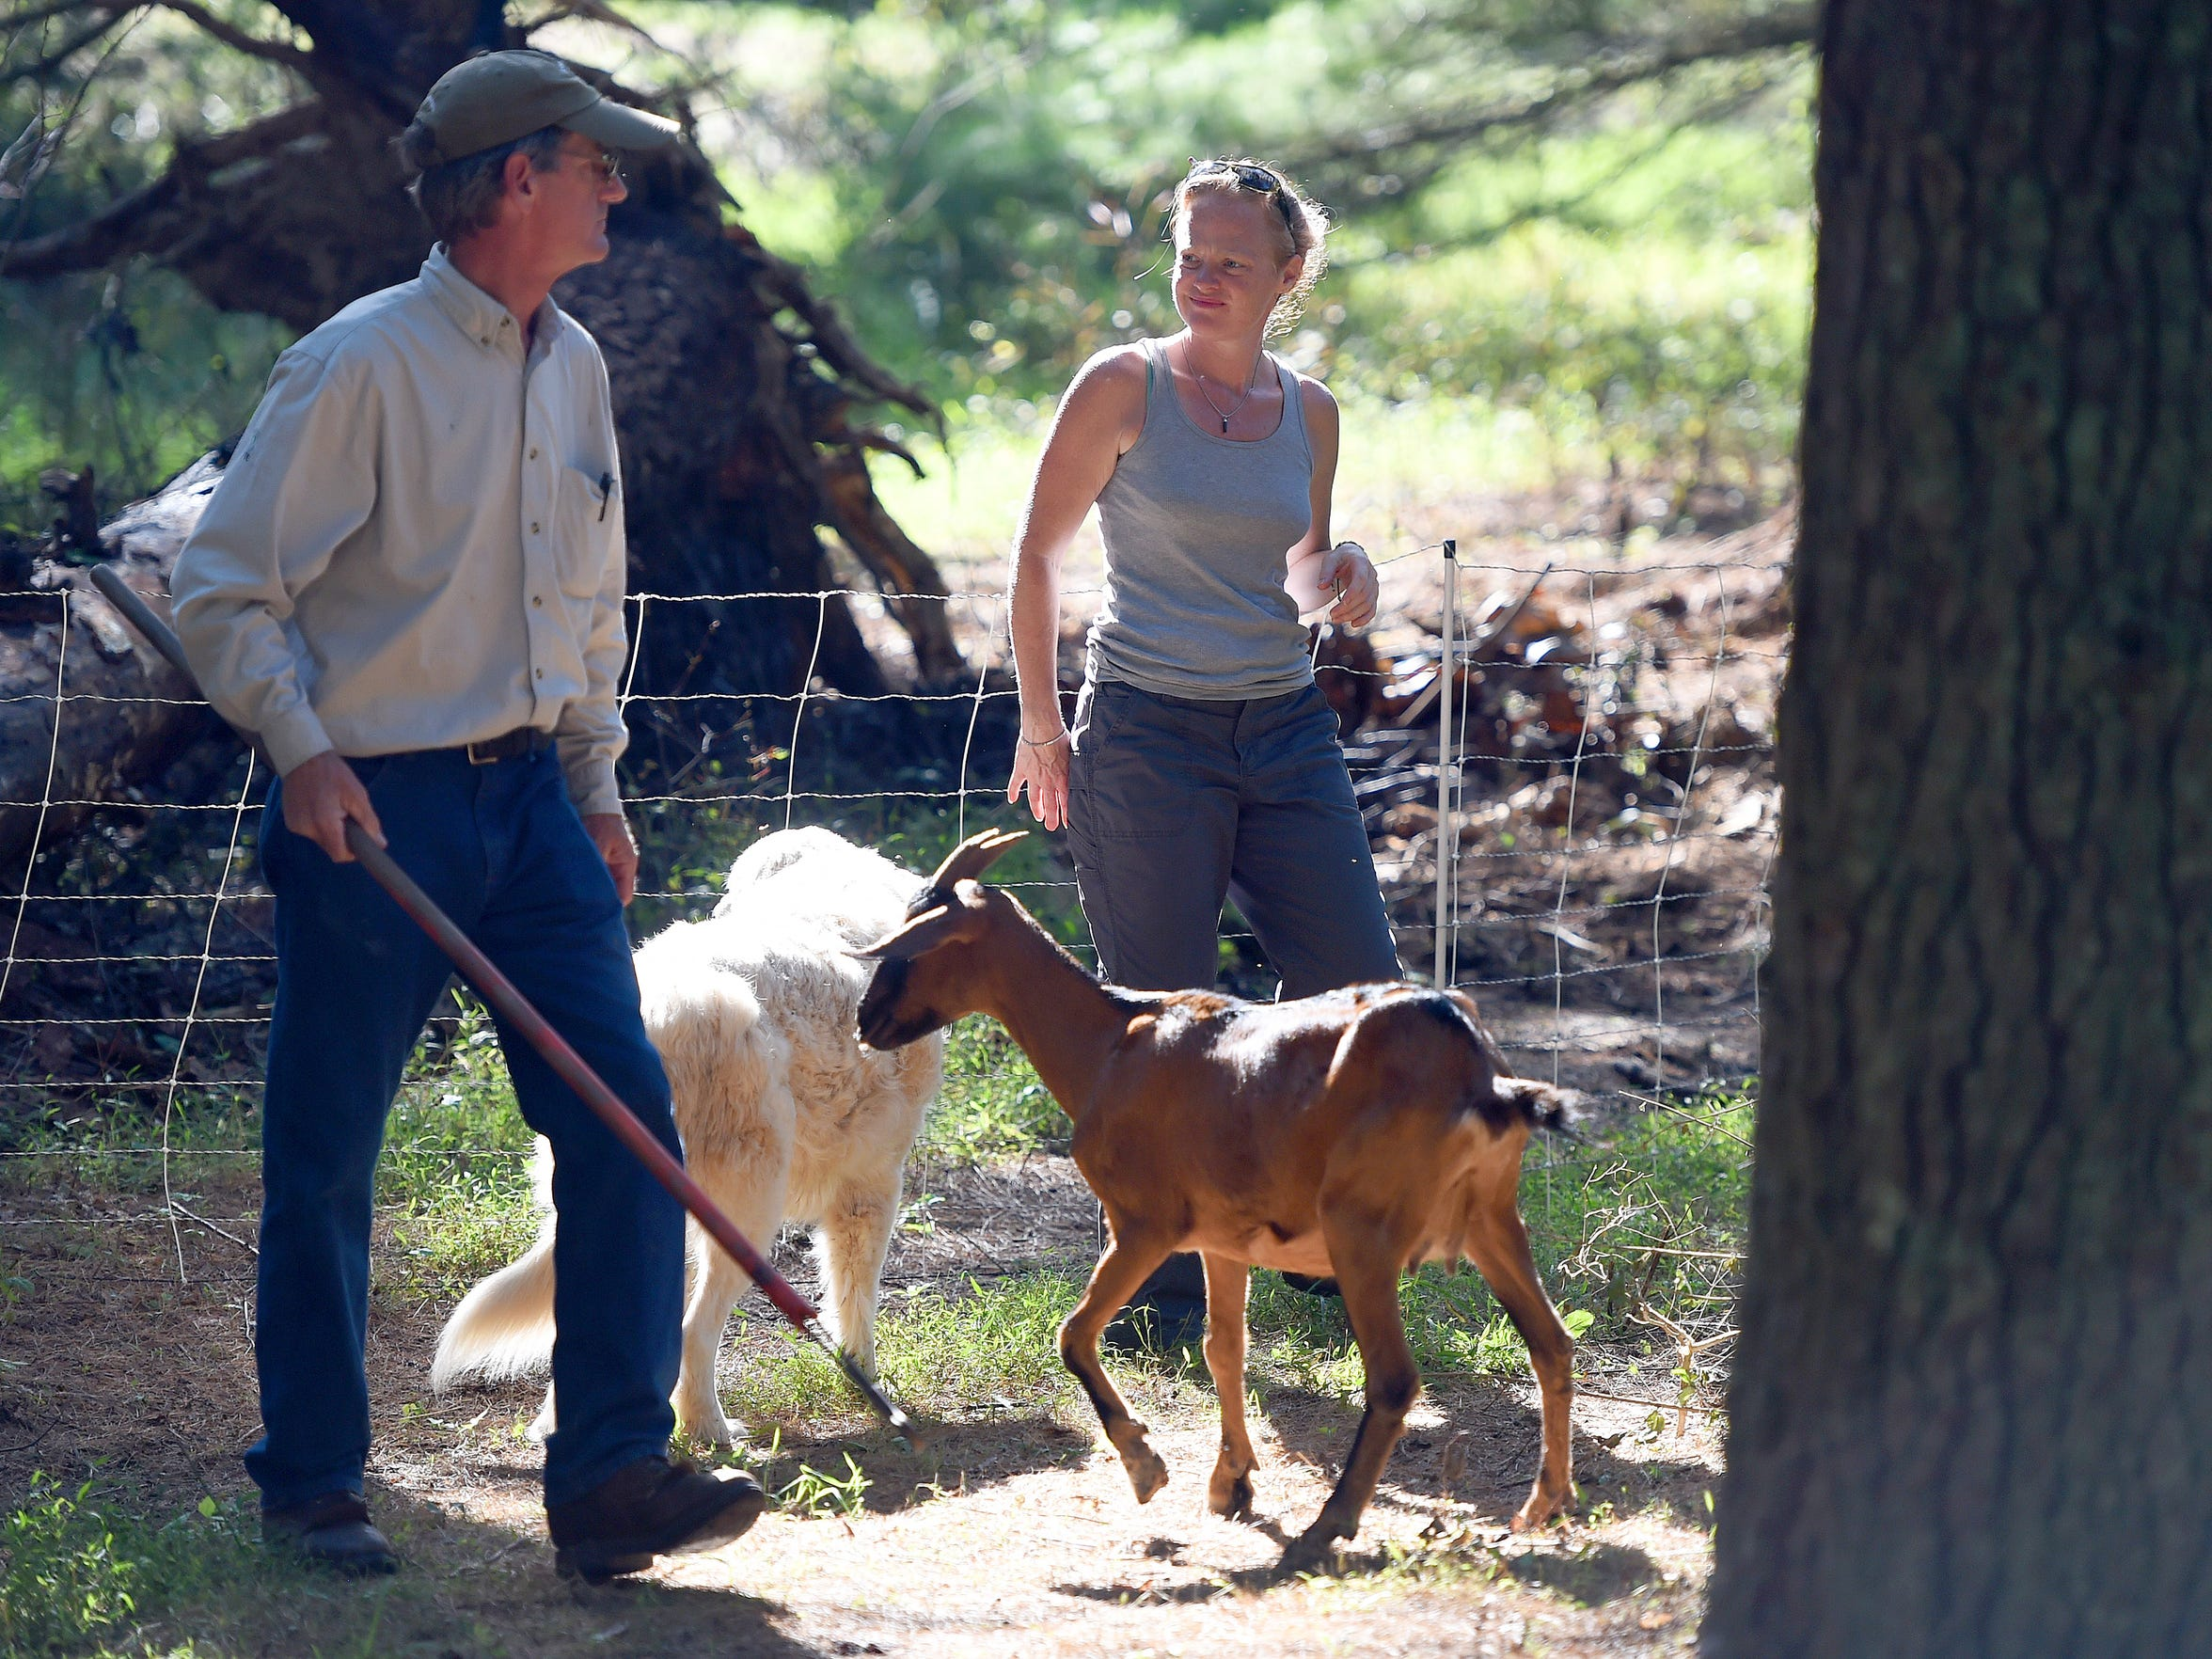 Sherrie Hannah speaks with Jace Goodling, owners of Goat Busters, who prepares to round up the goats after they've finished clearing a section of property on land near Churchville on Sept. 11, 2015. Hannah and her friend, Katie Shelton, enlisted the services of Goat Busters to help clear a section of land originally left to grow wild for 10 years.